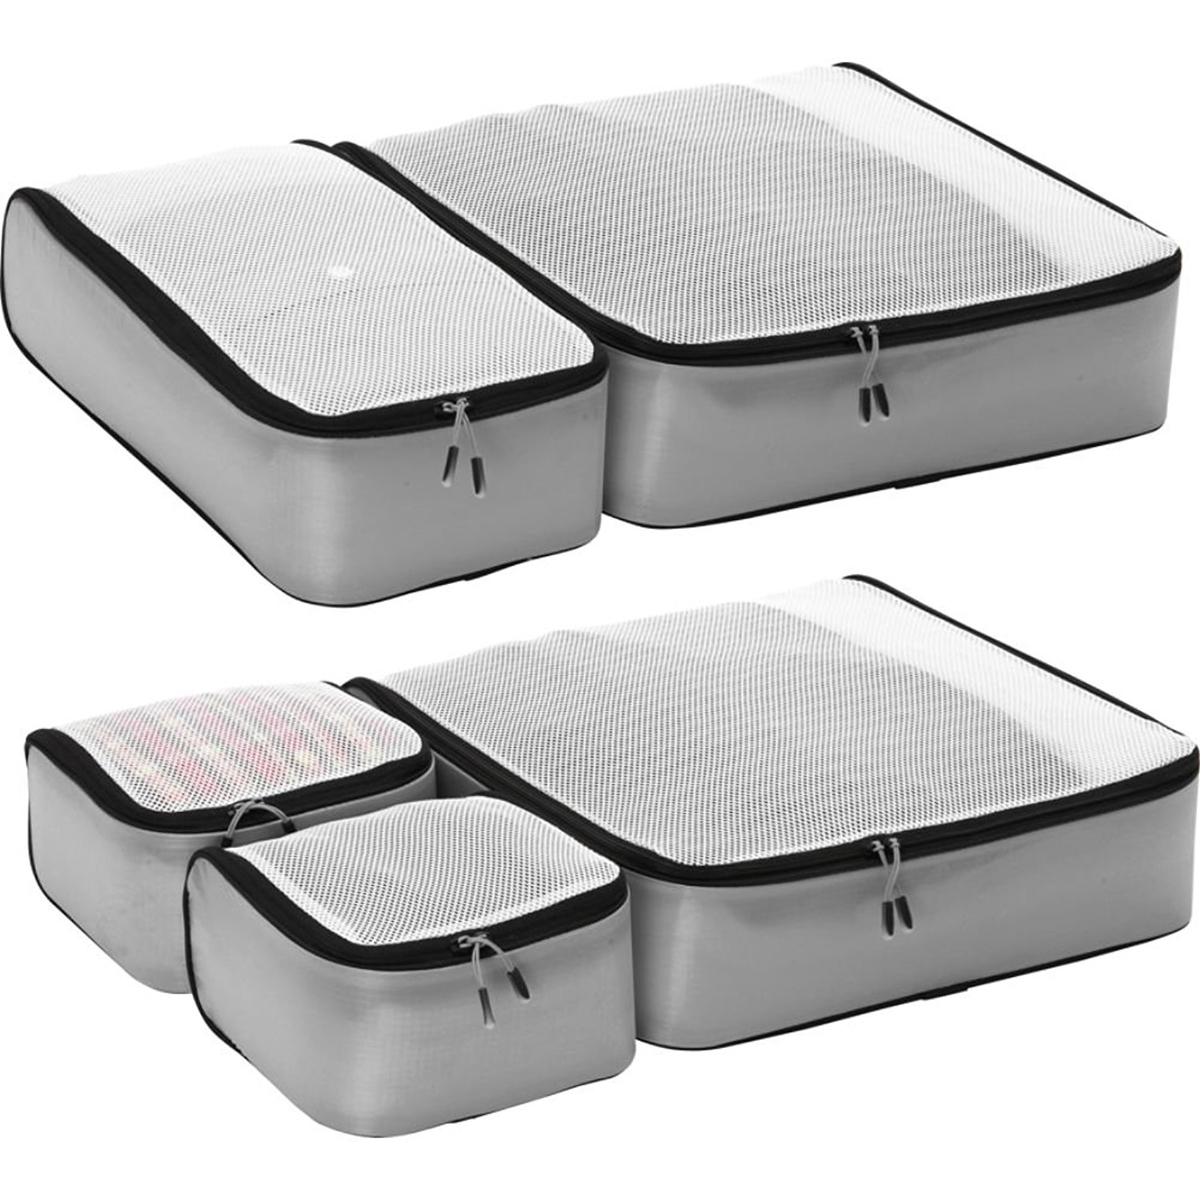 Frugal Finds For The Firstclass Traveler DealTown US Patch - Compact grill containers